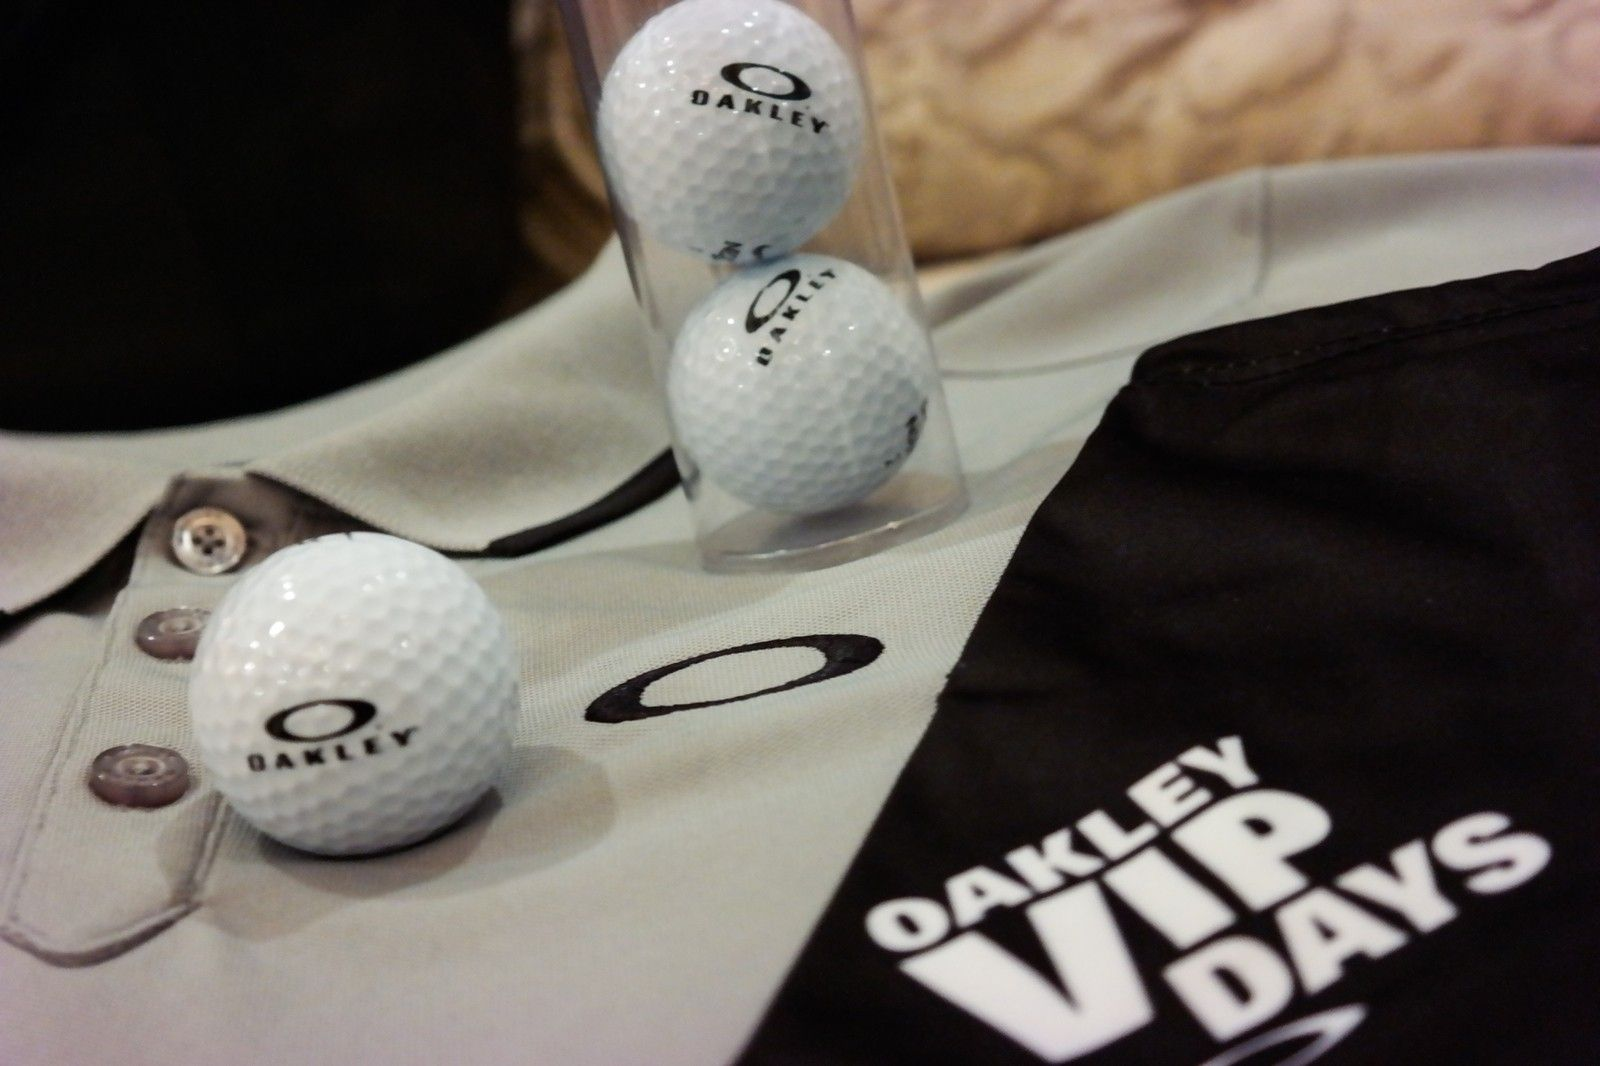 Want something you can't go out and buy?  OAKLEY V.I.P. polo, mf bag, golf balls and more. - SAM_1689.jpg